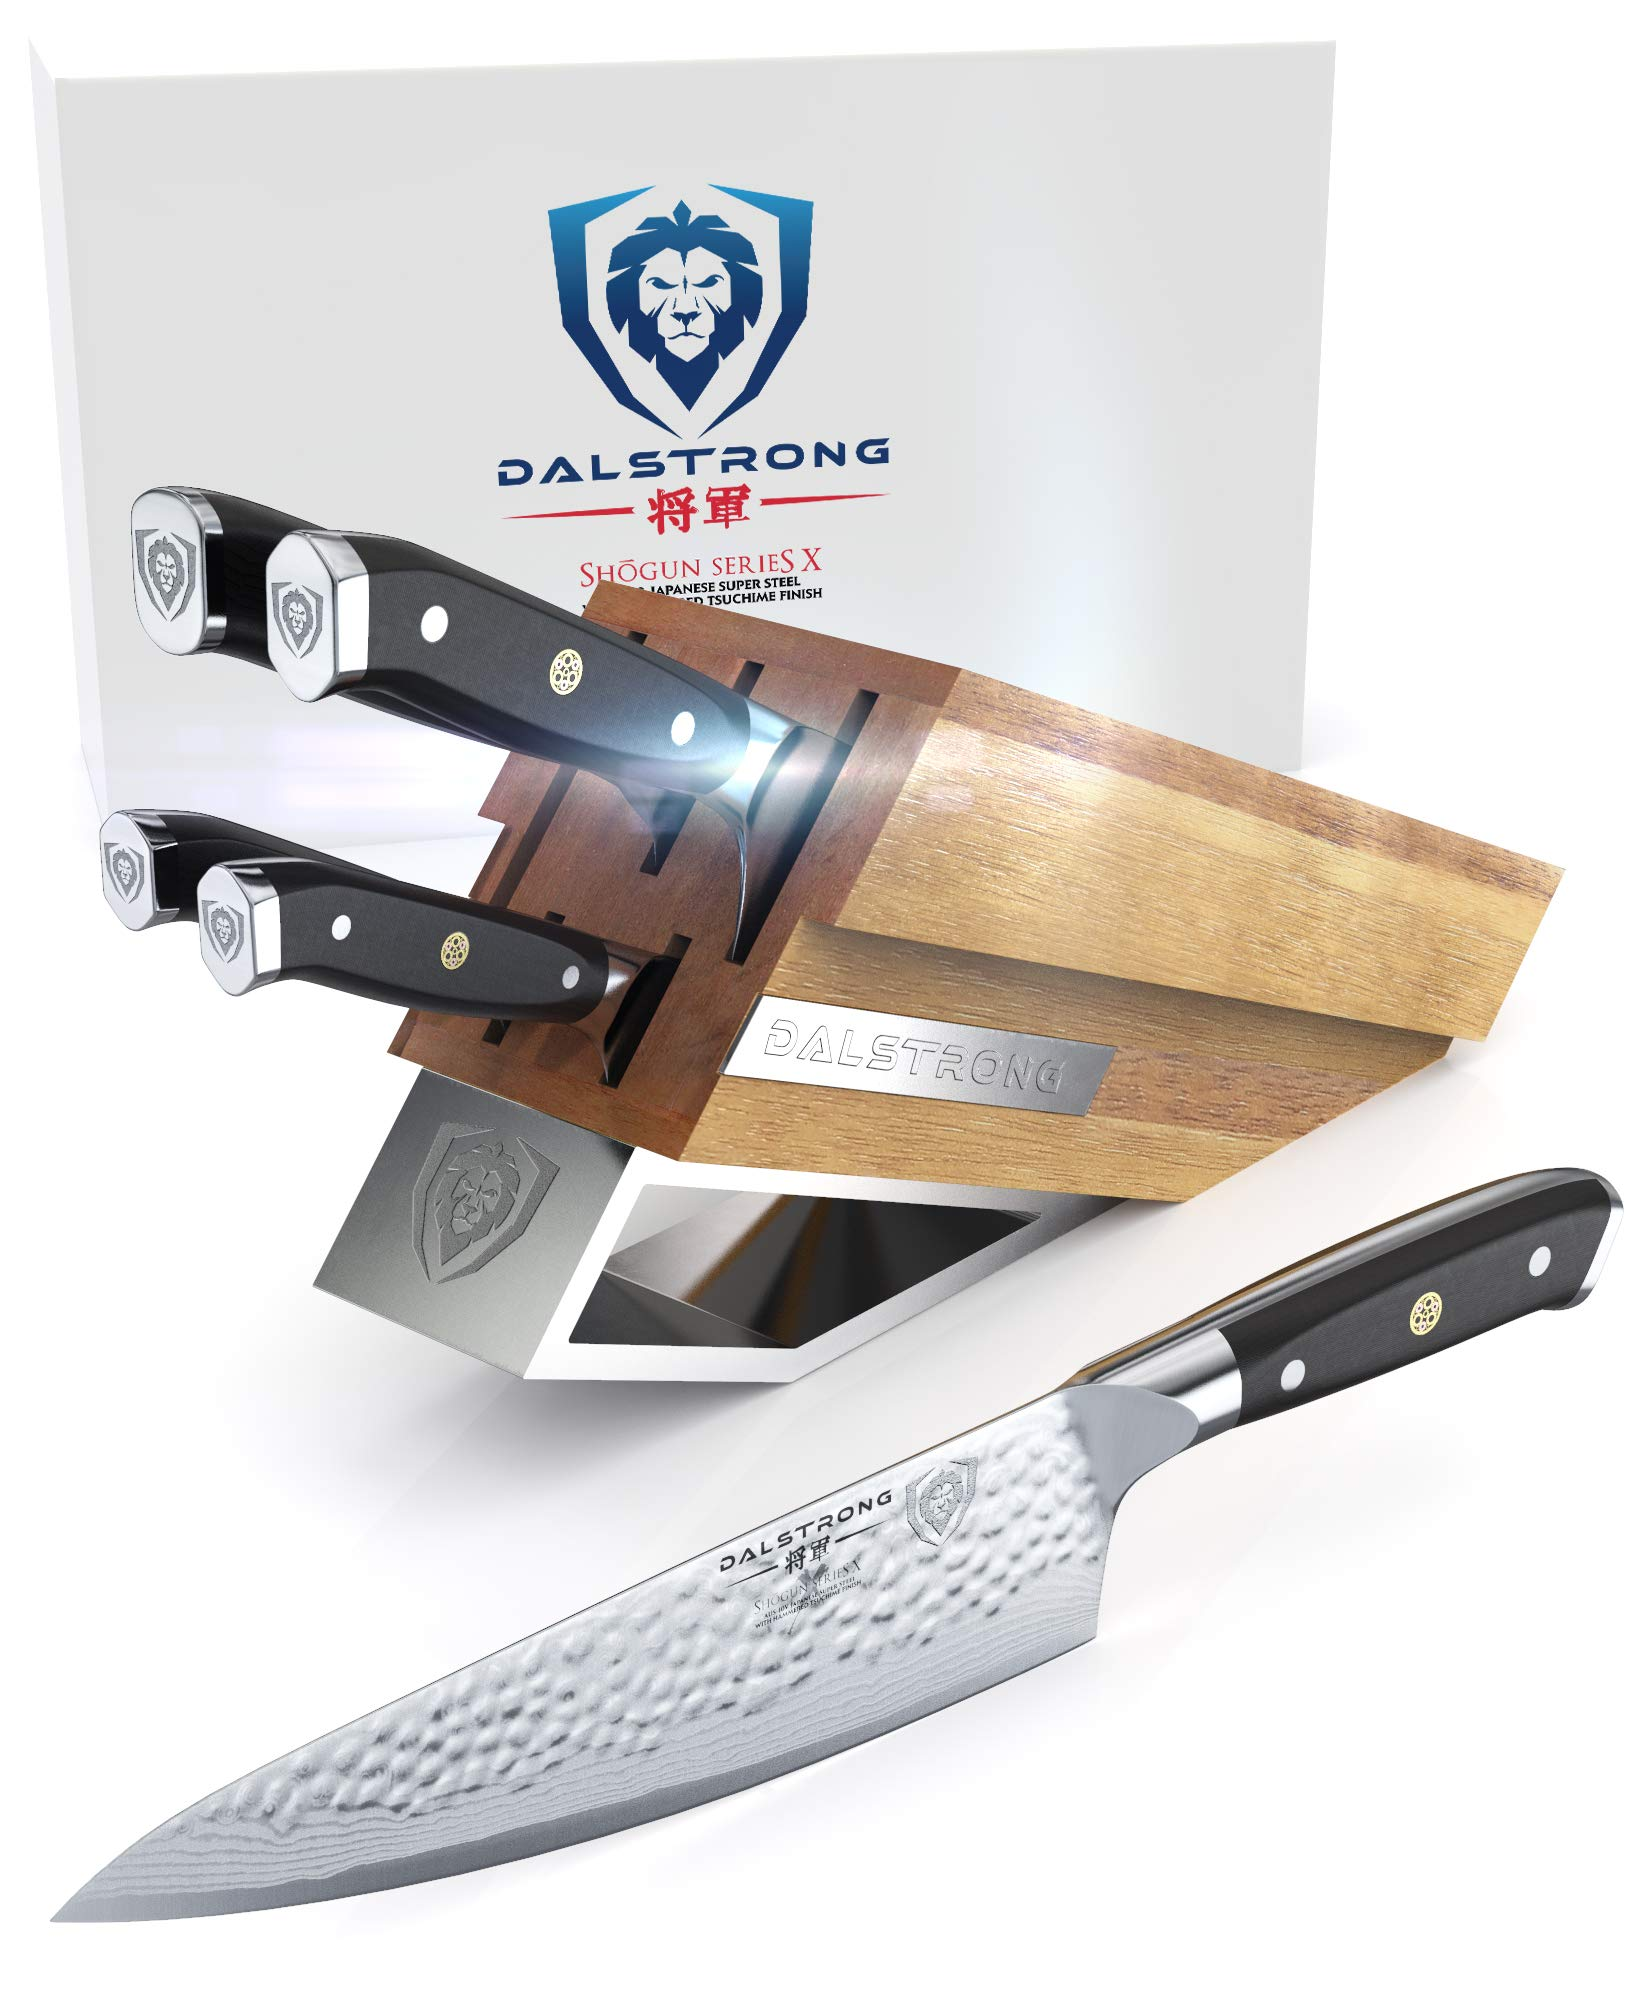 DALSTRONG Knife Set Block - Shogun Series X Knife Set - AUS-10V High-Carbon Japanese Super Steel - 5 pieces